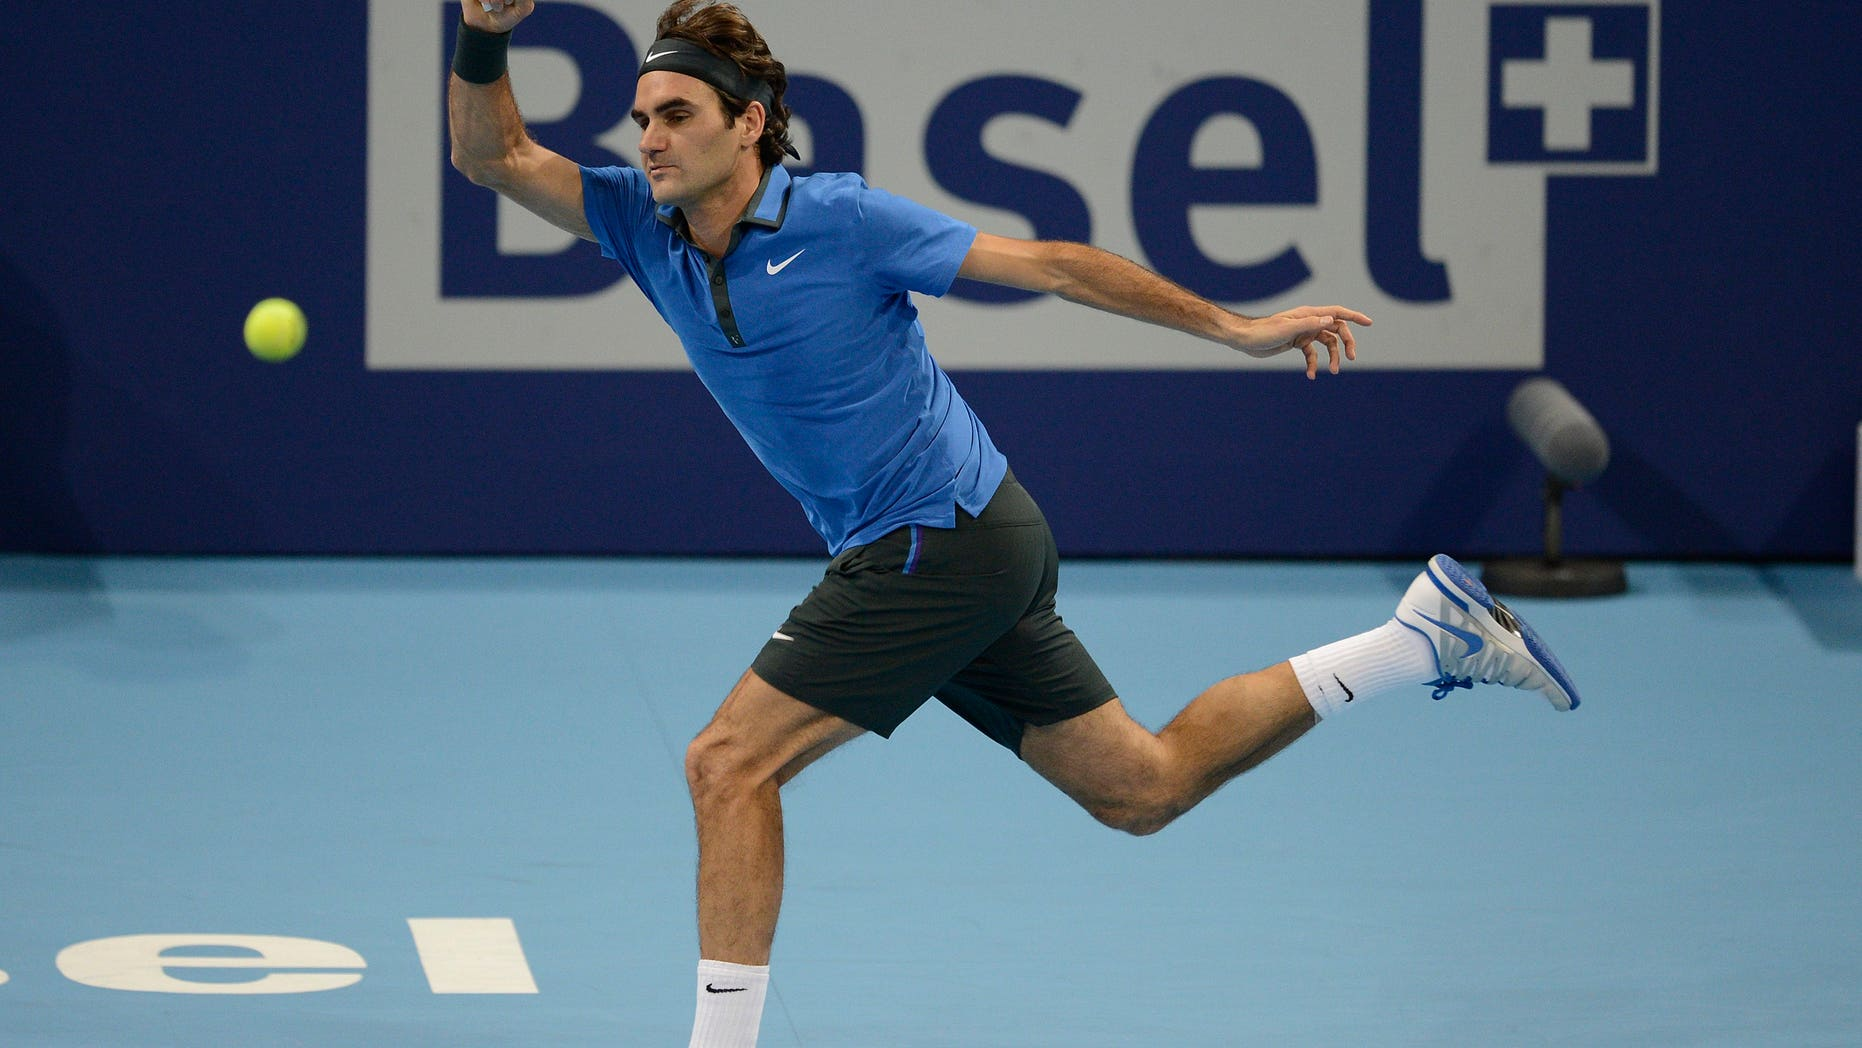 """FILE - This is a  Sunday, Oct. 28, 2012  file photo of Switzerland's Roger Federer as he returns a ball to Argentina's Juan Martin Del Potro during their final match at the Swiss Indoors tennis tournament at the St. Jakobshalle in Basel, Switzerland. Roger Federer says  he will play at the Swiss Indoors in October, ending speculation he could skip his hometown tournament in a contractual dispute. Federer told the  Swiss daily Tages Anzeiger on Wednesday April 10, 2013 that """"everyone knows how much this tournament means to me, and that is still true.""""  (AP Photo/Keystone/Georgios Kefalas, File)"""